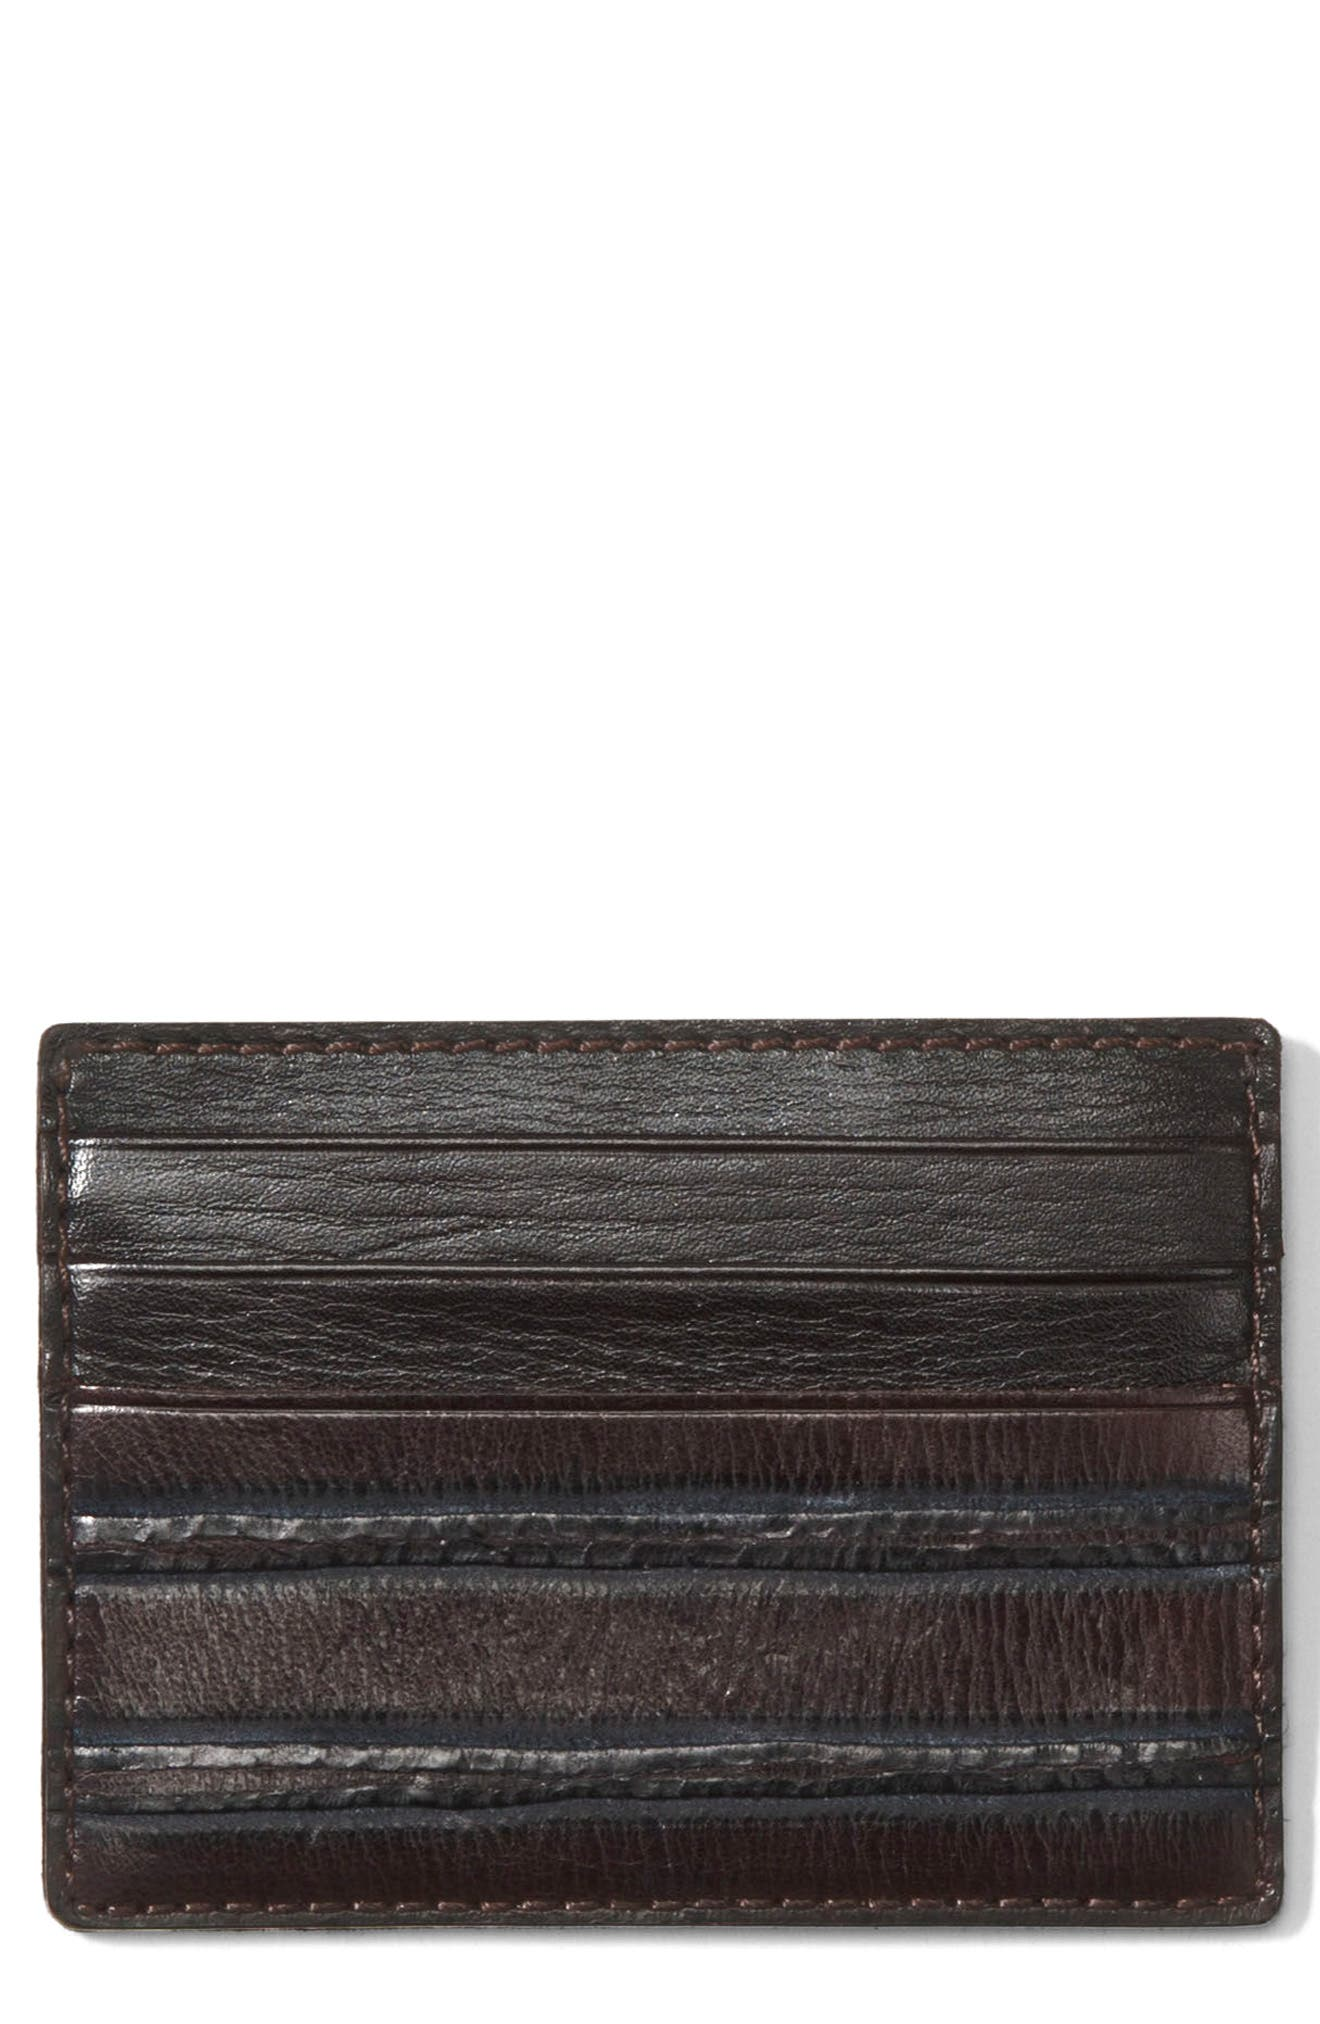 Leather Card Case,                             Main thumbnail 1, color,                             205